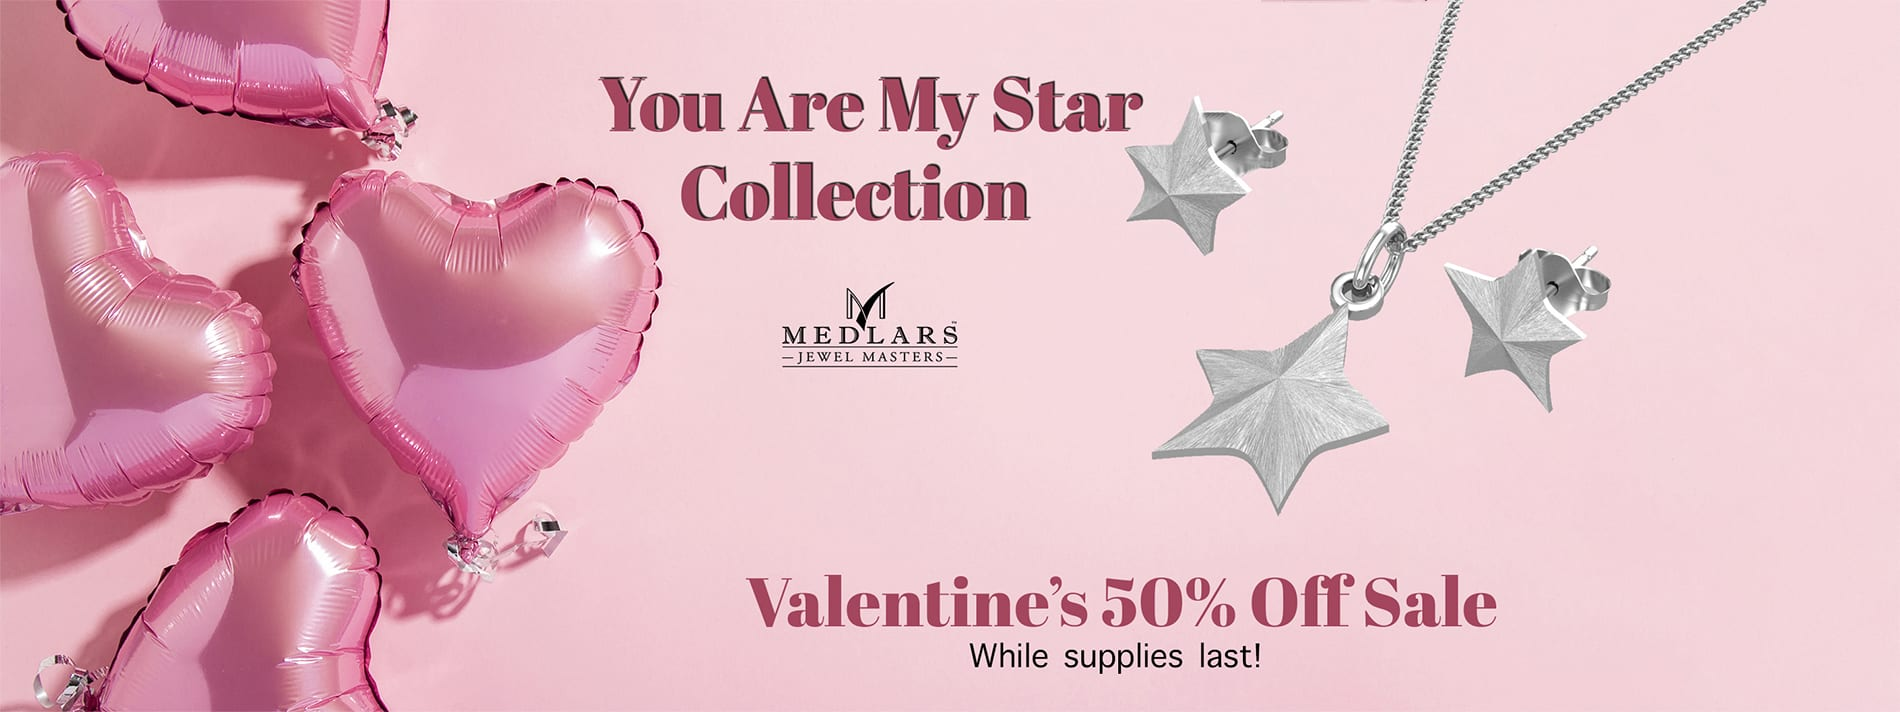 You Are my Star v-day